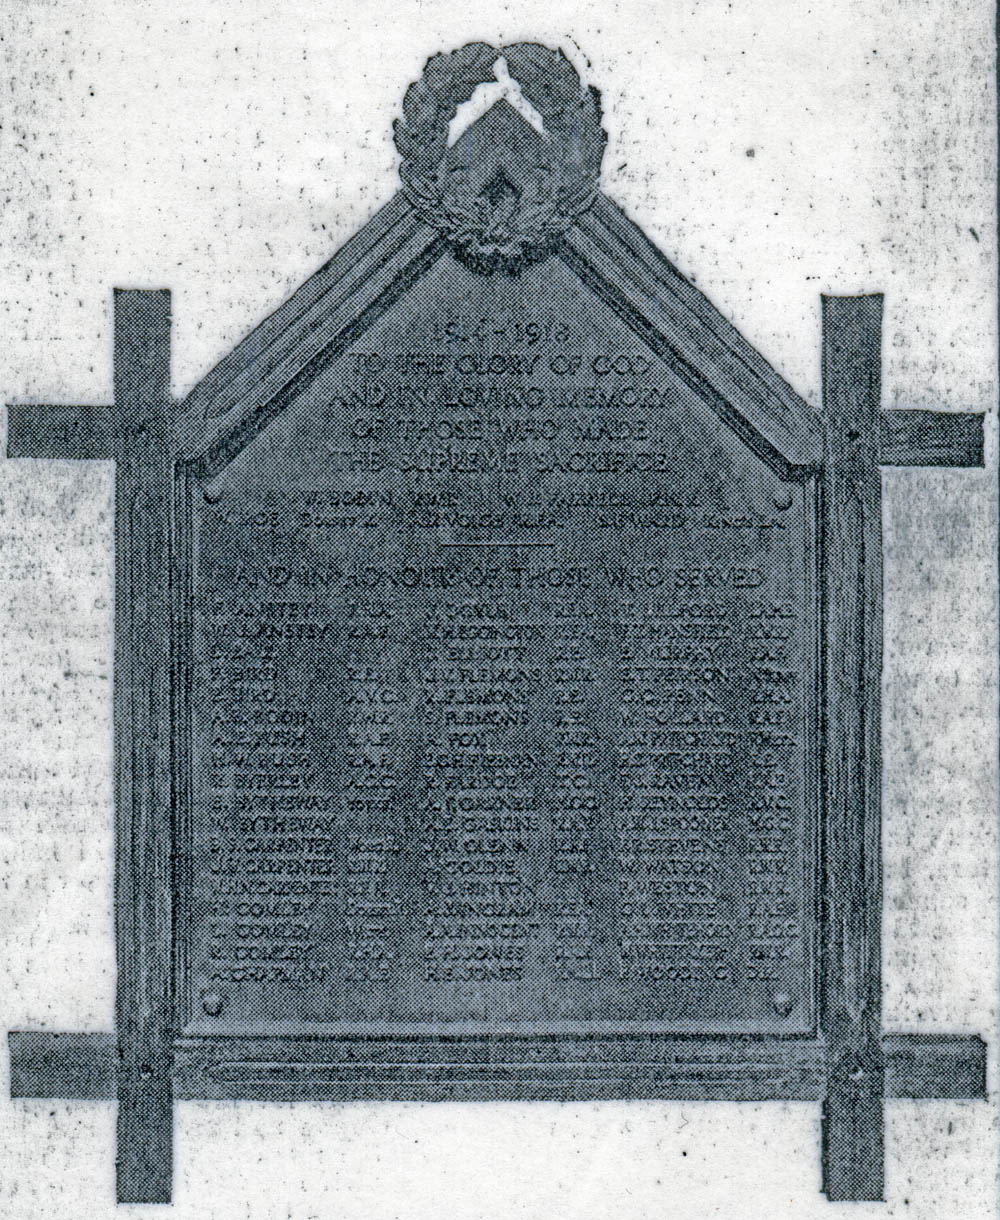 Memorial at St. Michael's Stoke